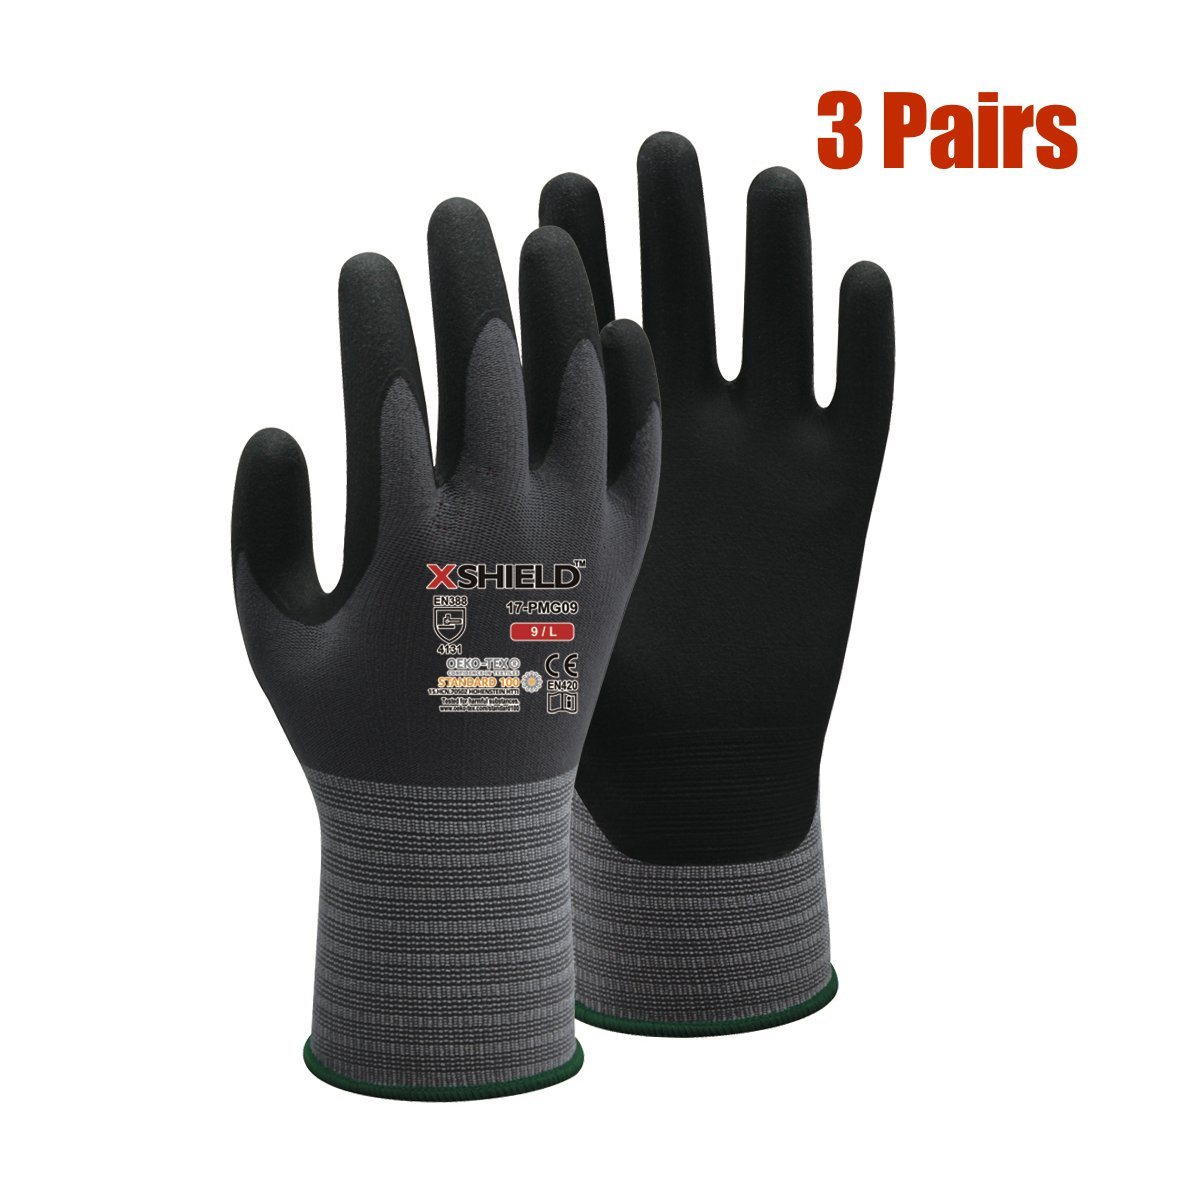 XSHIELD 17-PMG,Ultimate Micro Foam Nitrile Grip Safety Work Gloves for General Purpose, OKEO-Tex Certificated,Ideal for Auto Repair, Home Improvement,3 Pairs(Large)